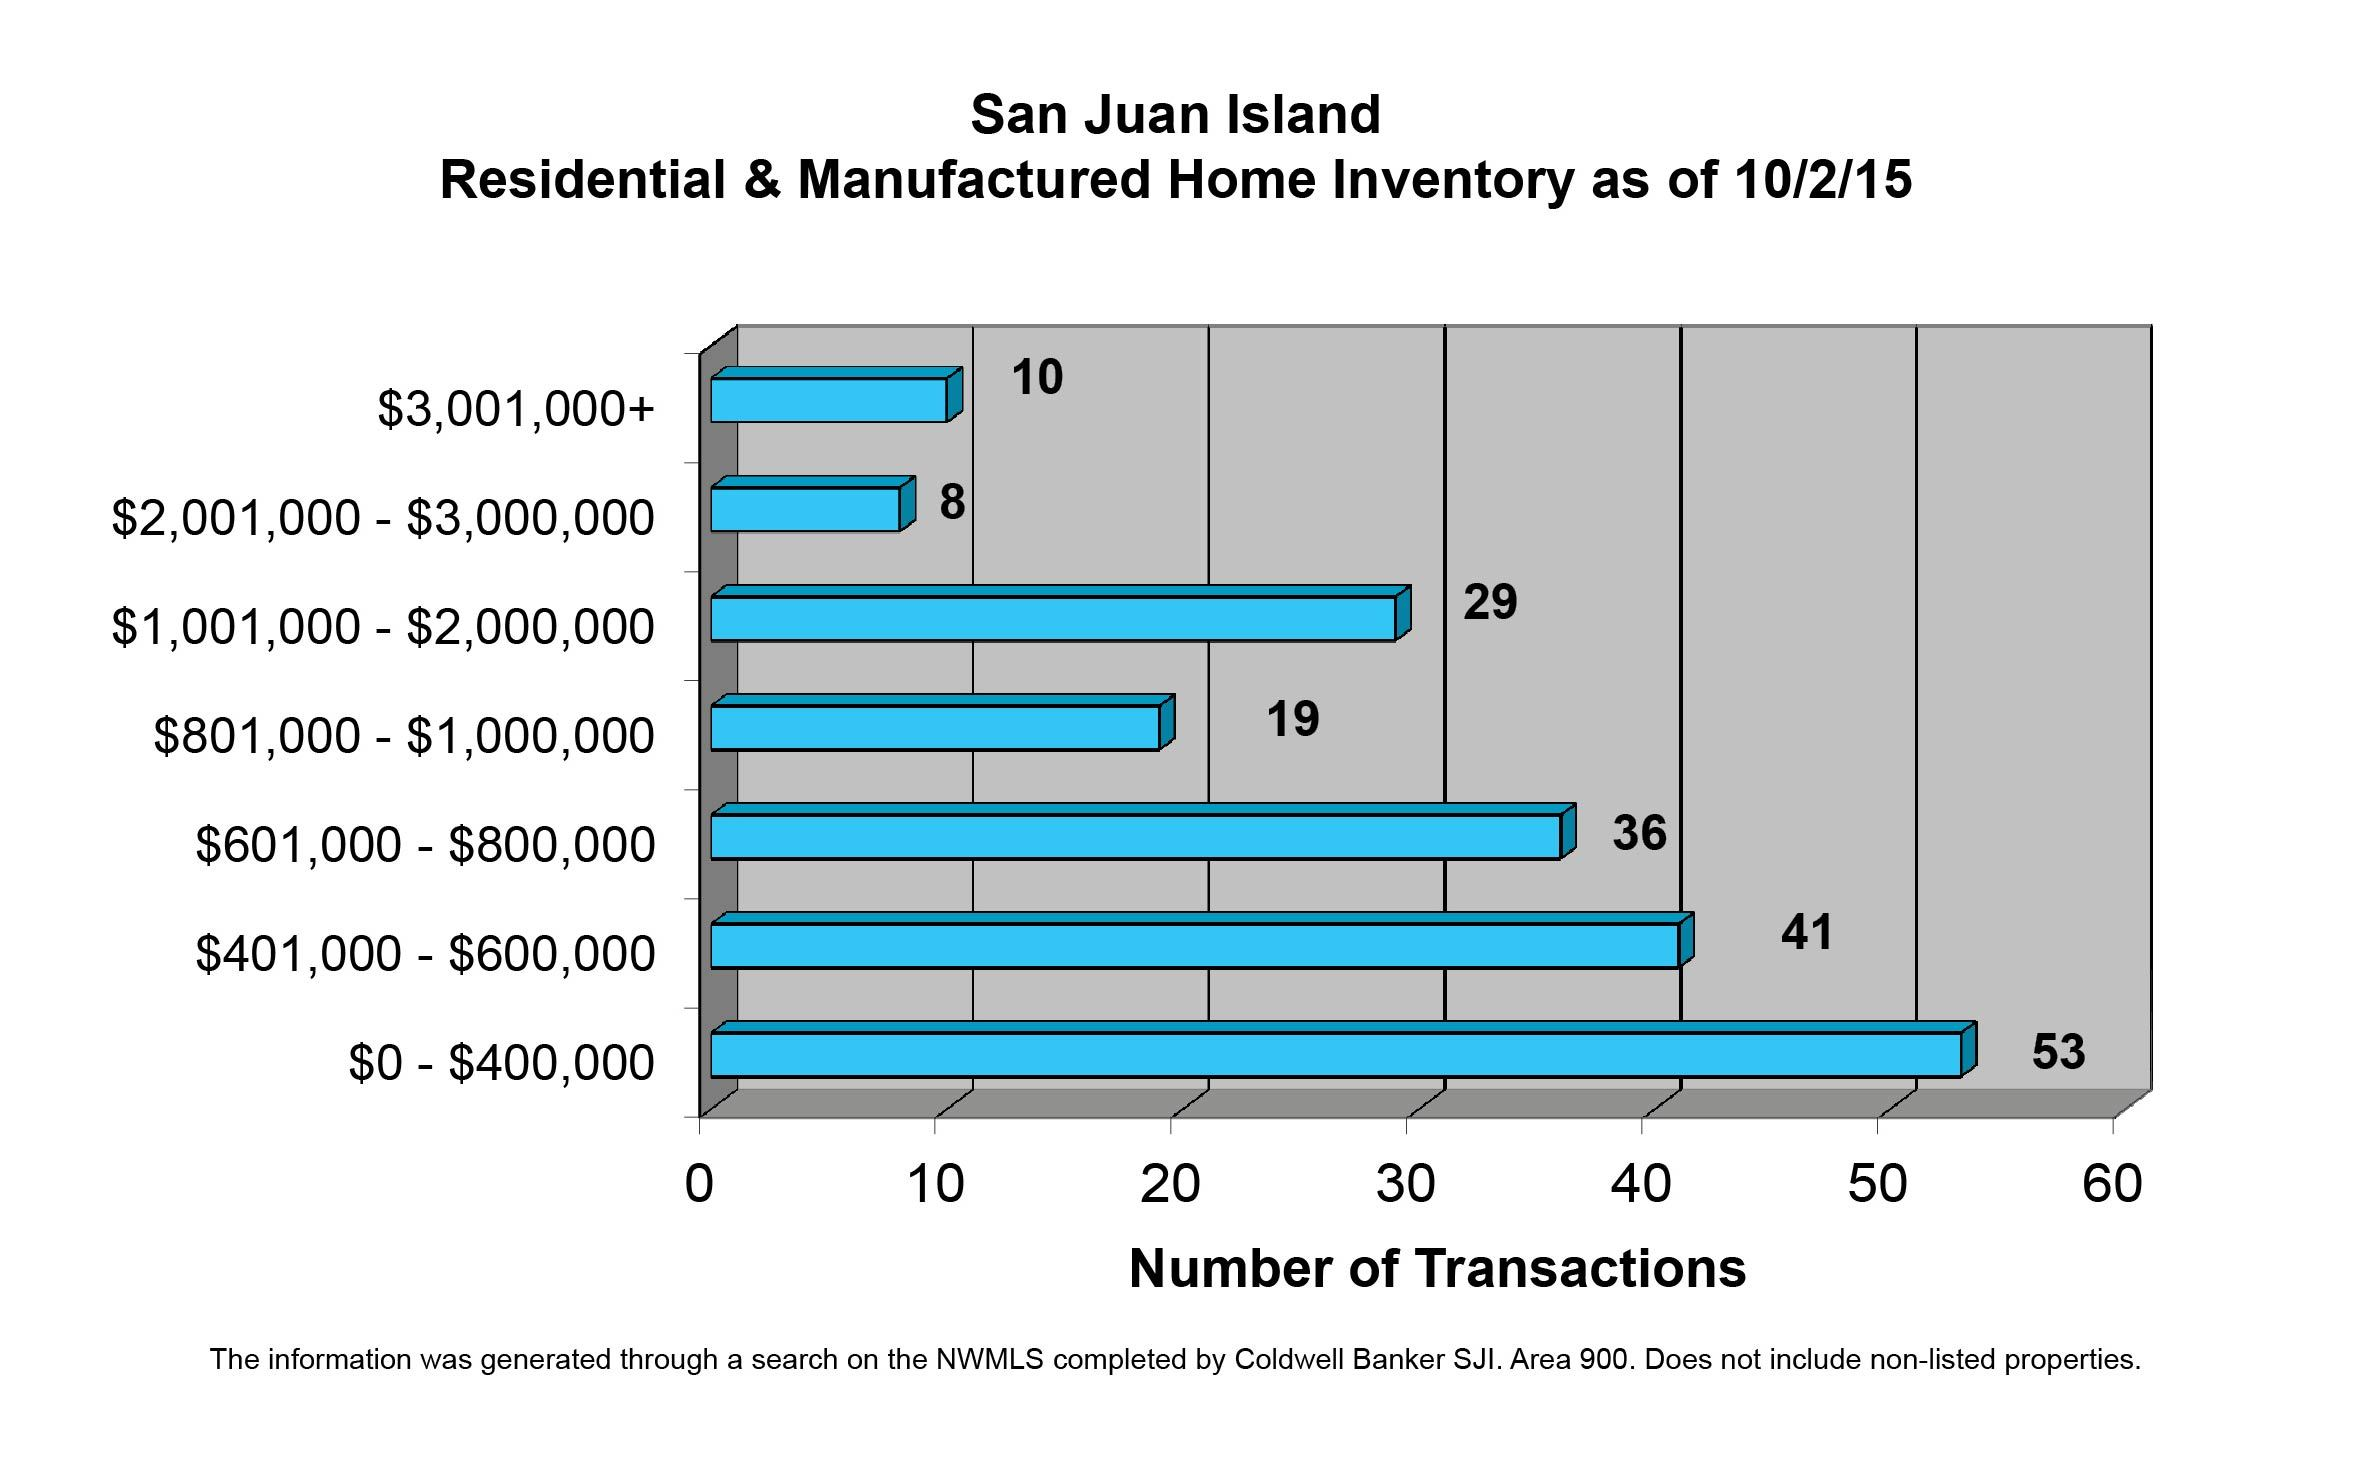 San Juan Island Home Inventory as of Oct 2, 2015